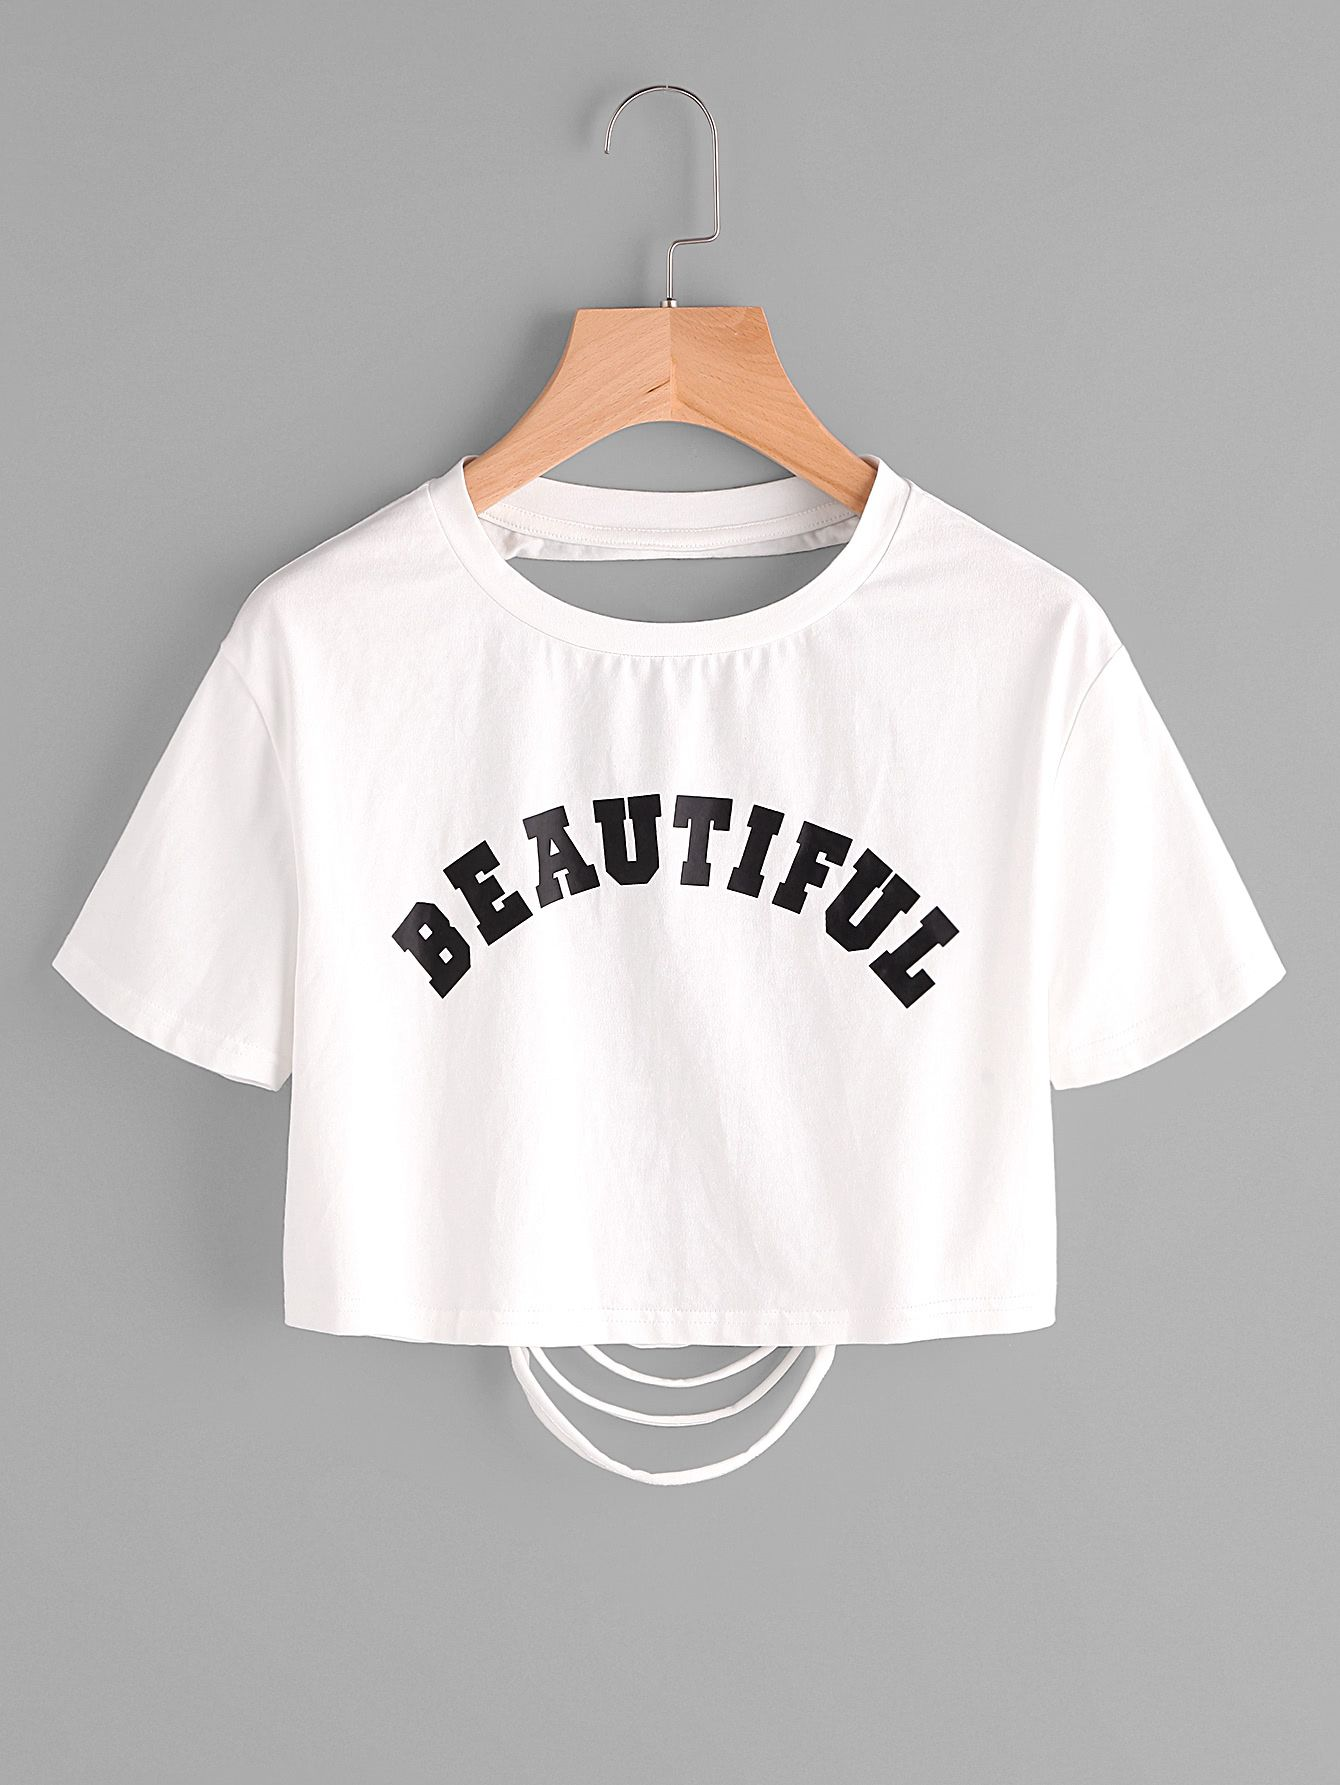 29c98bdd32 Shop Letter Print Ripped Back Crop T-shirt online. SheIn offers Letter Print  Ripped Back Crop T-shirt & more to fit your fashionable needs.